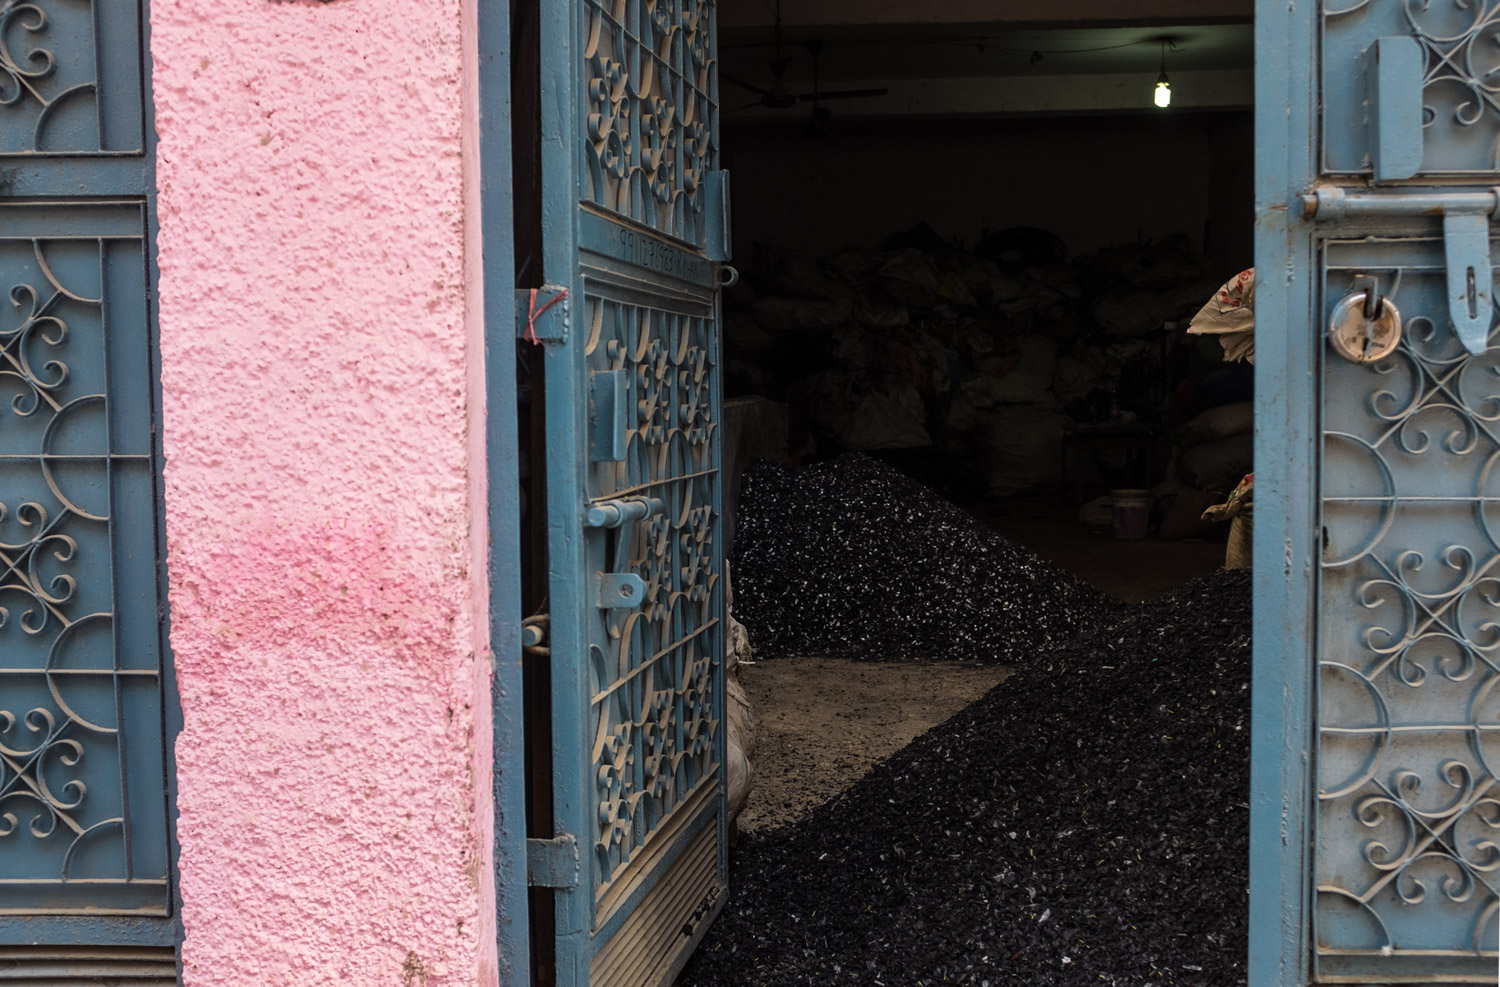 An unassuming residential building contains a workspace where plastics and metals are sorted in Mustafabad, a slum outside New Delhi.